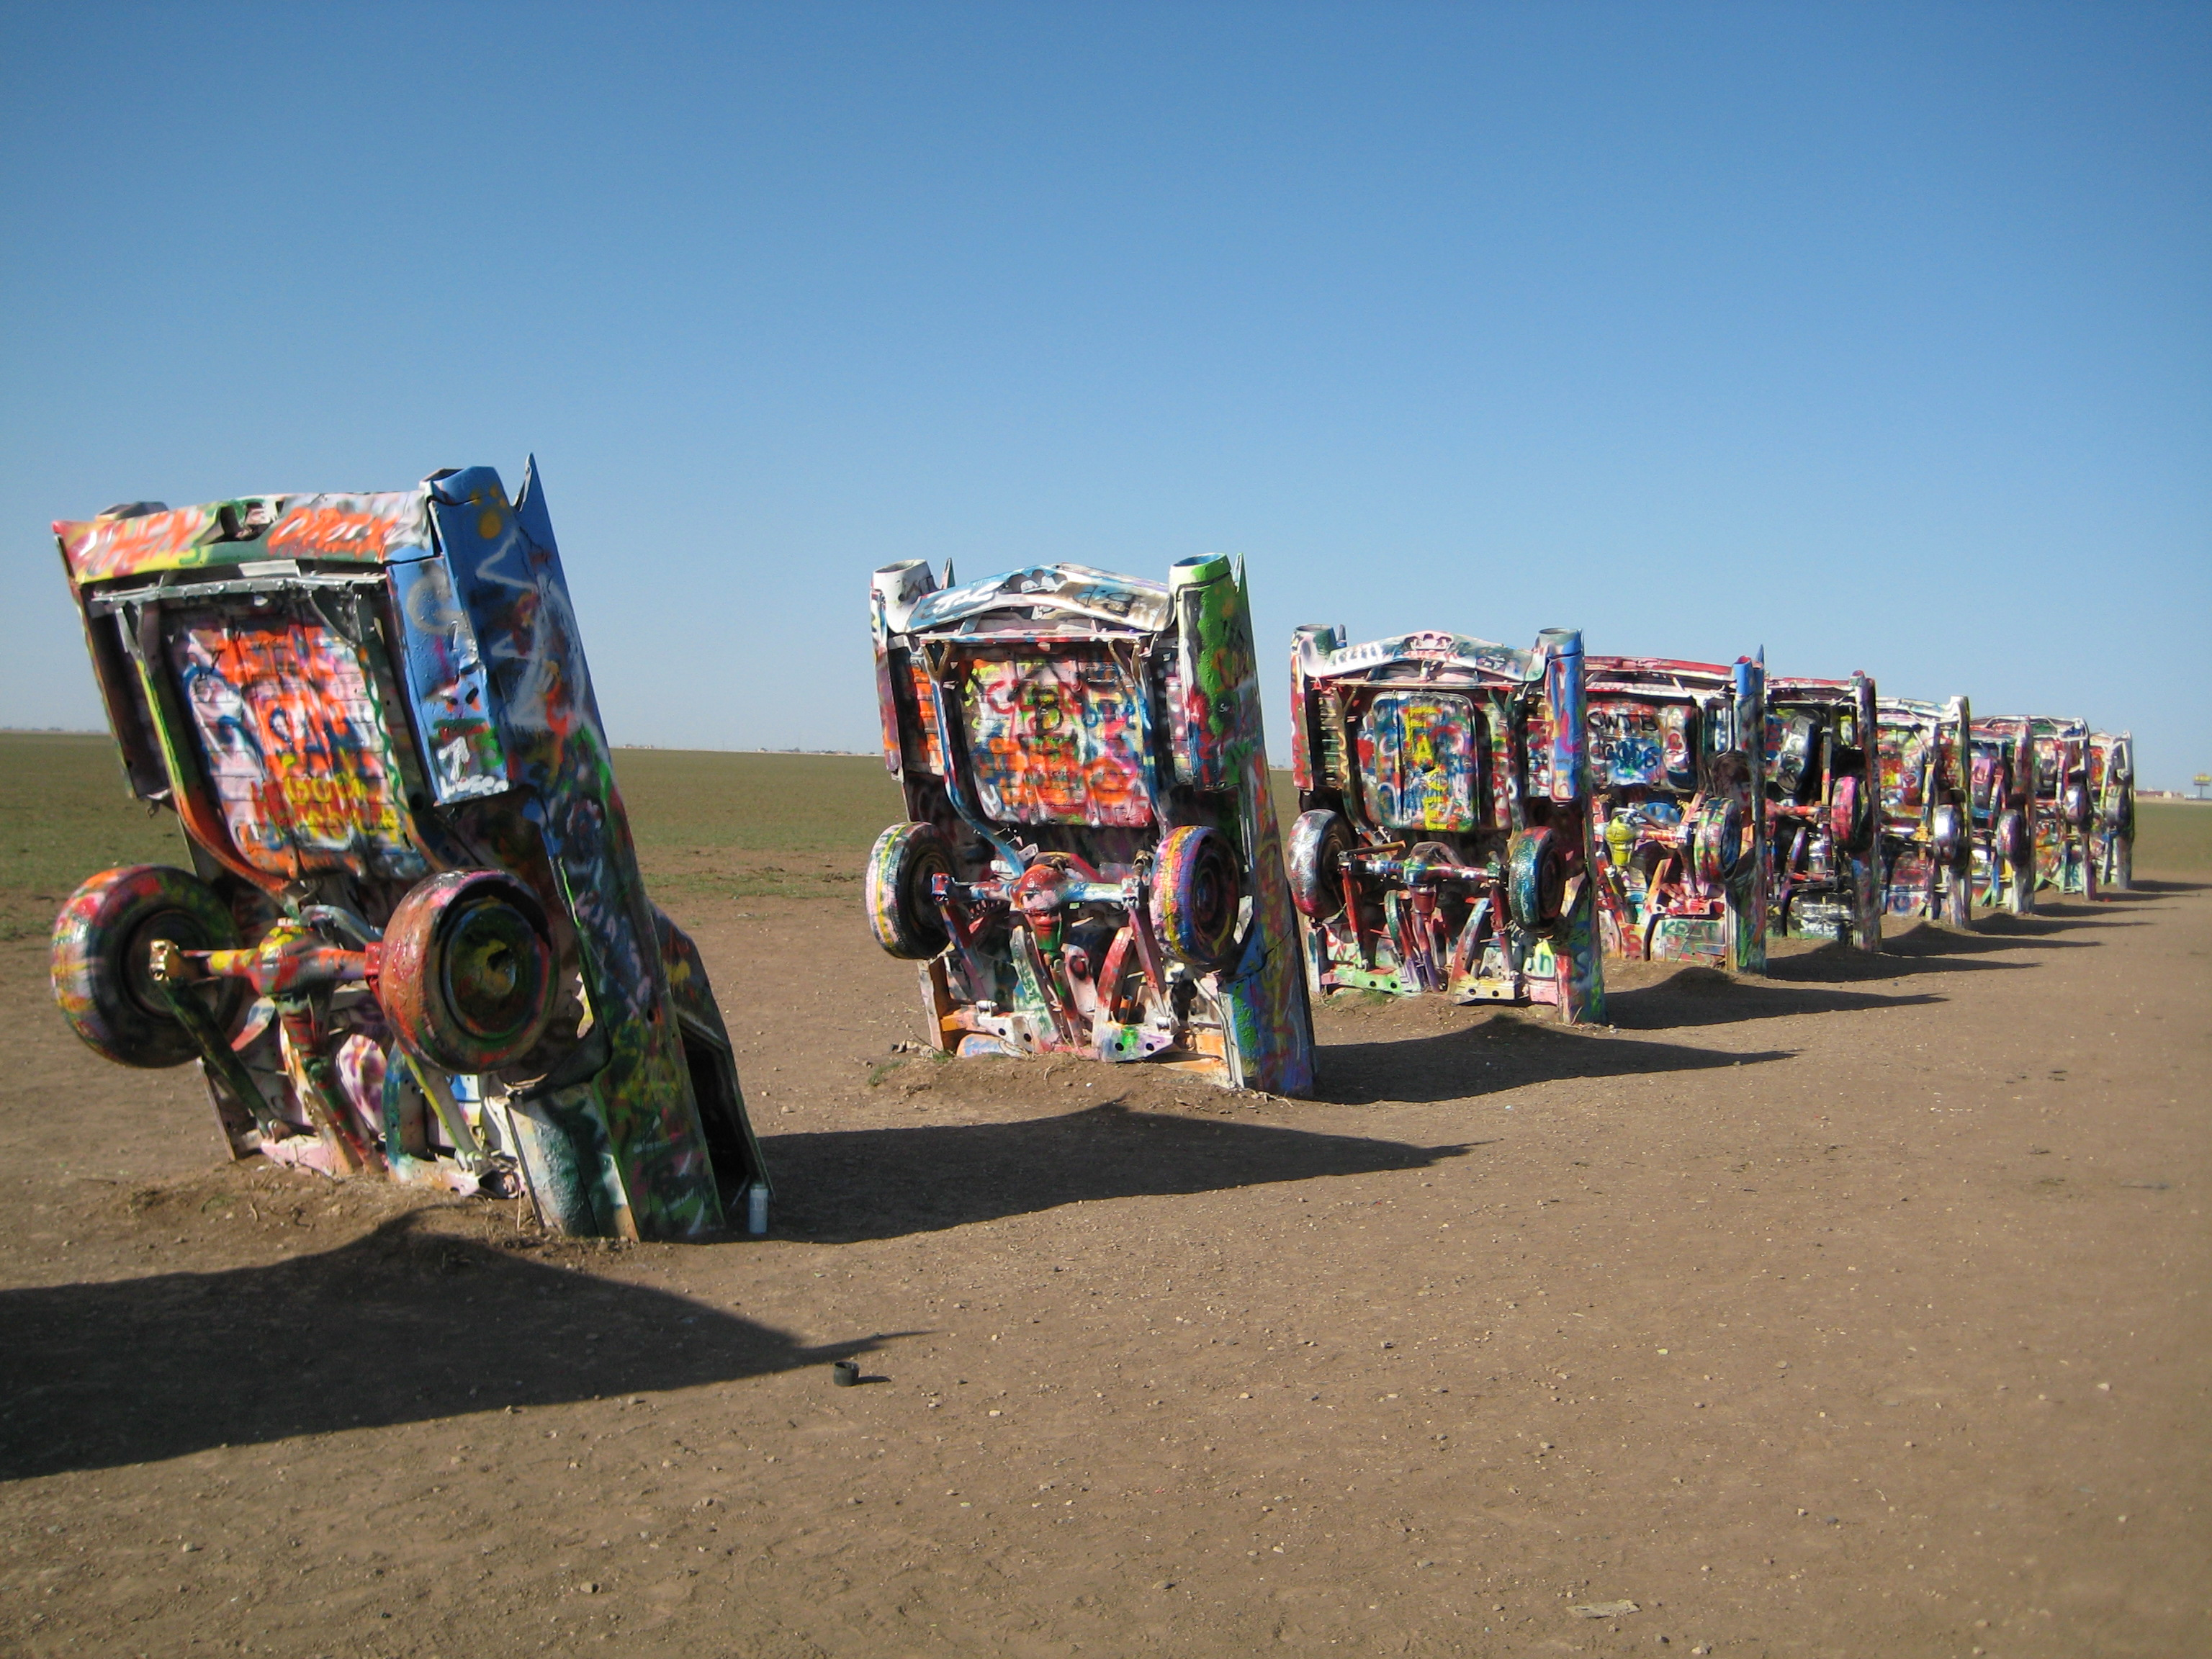 http://upload.wikimedia.org/wikipedia/commons/9/95/Cadillac_Ranch.jpg